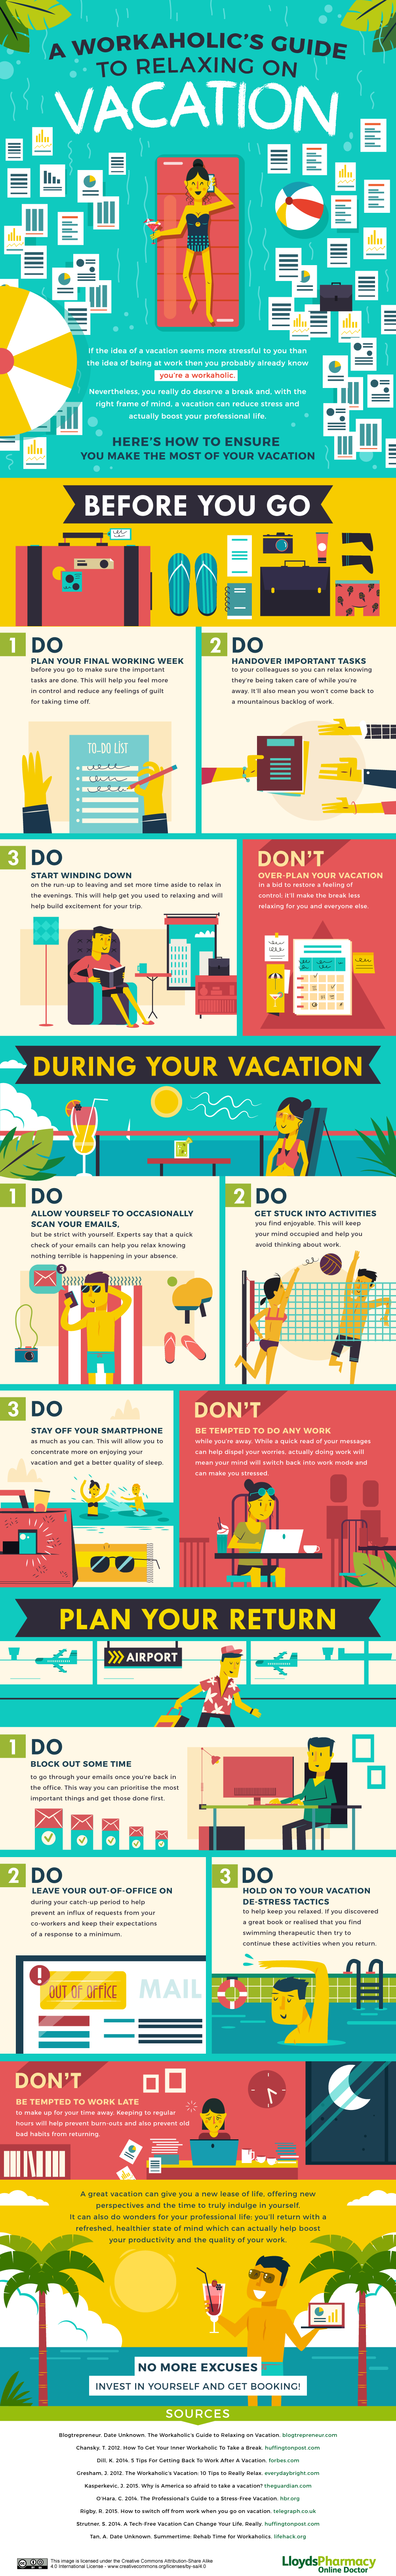 workaholics-guide-vacation-infographic.png